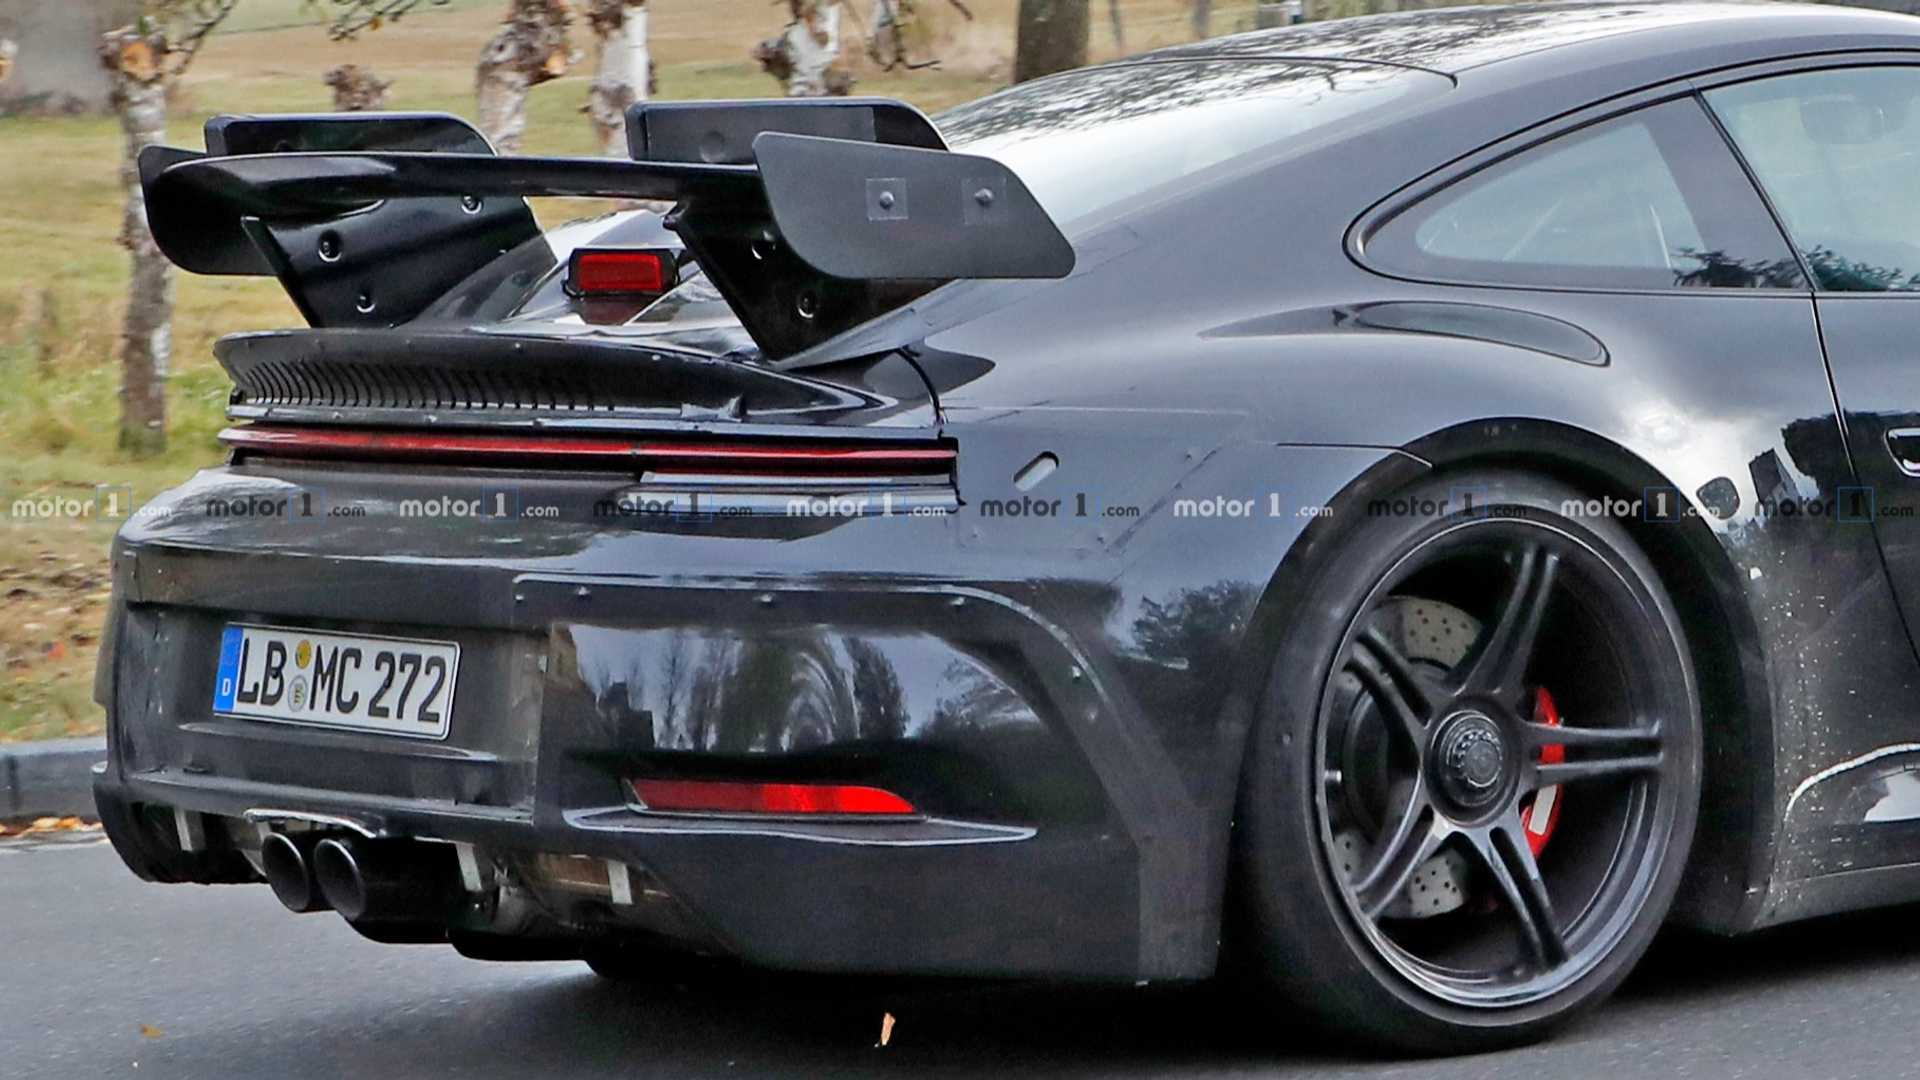 New Porsche 911 Gt3 Caught From Behind In The Evening